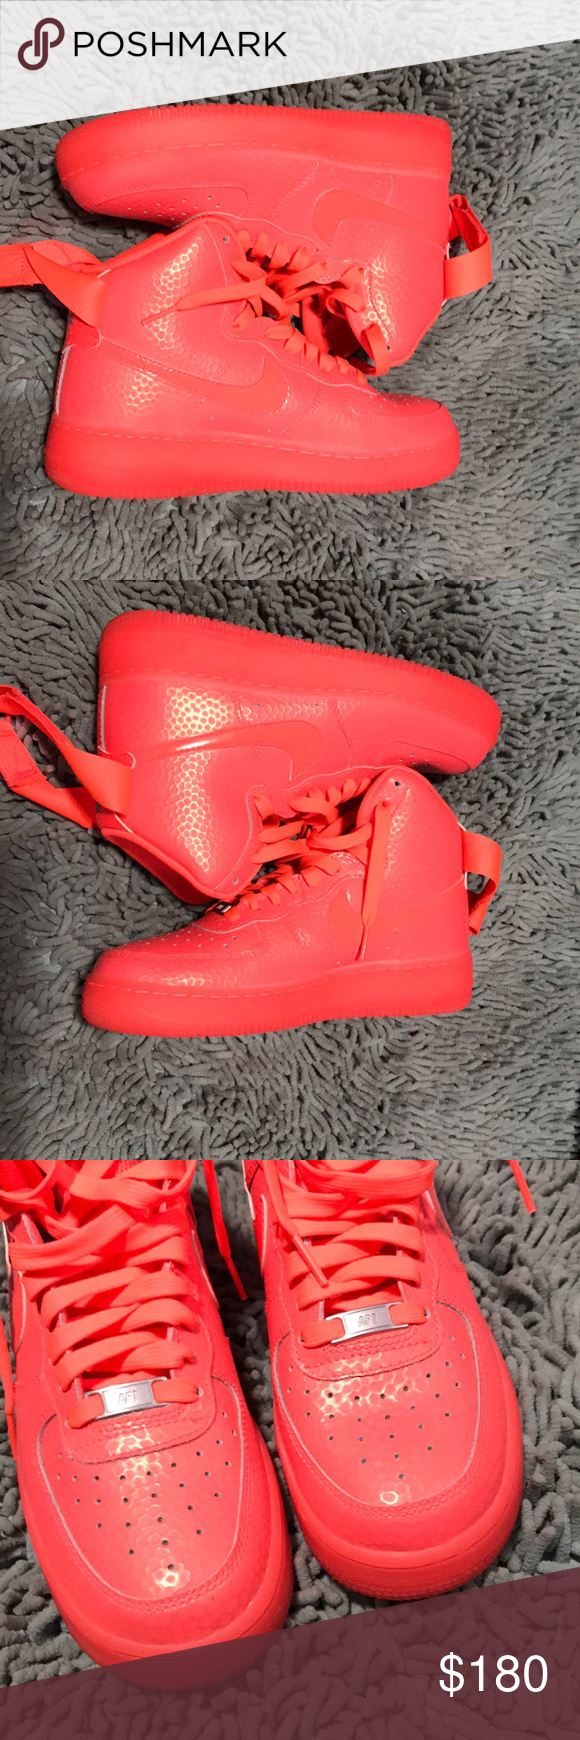 Unique Neon Air Force 1s Forces Unlike Any Youve Seen Pink Orange Color Only Wore Once In Great Used Condition True To Size Feel Free Ask